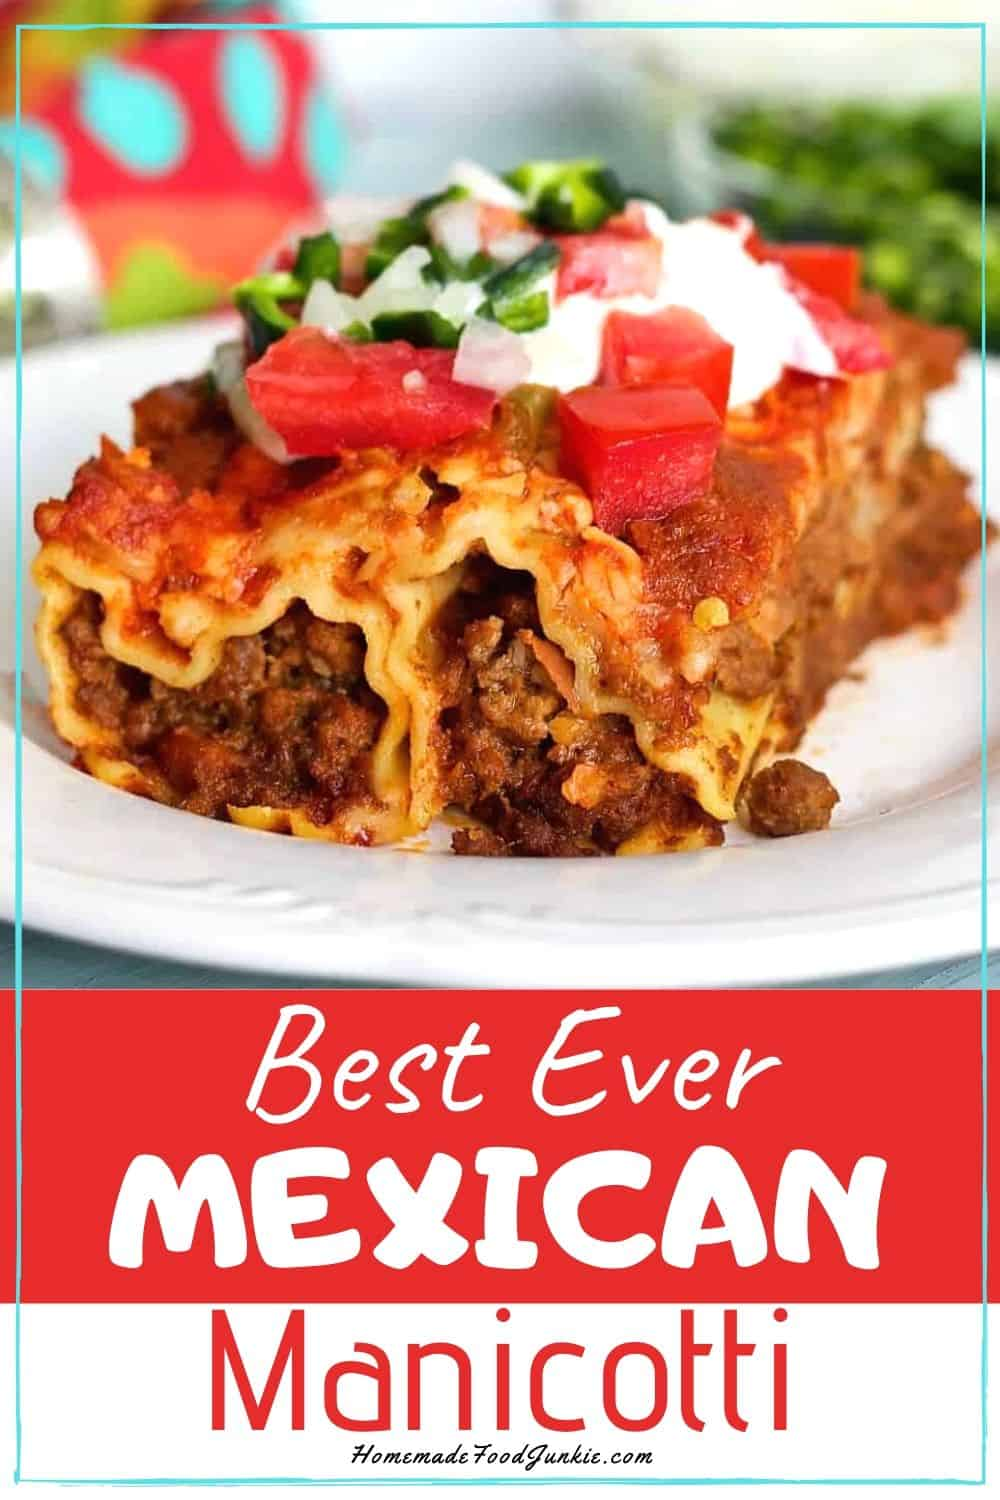 best ever mexican manicotti-pin image